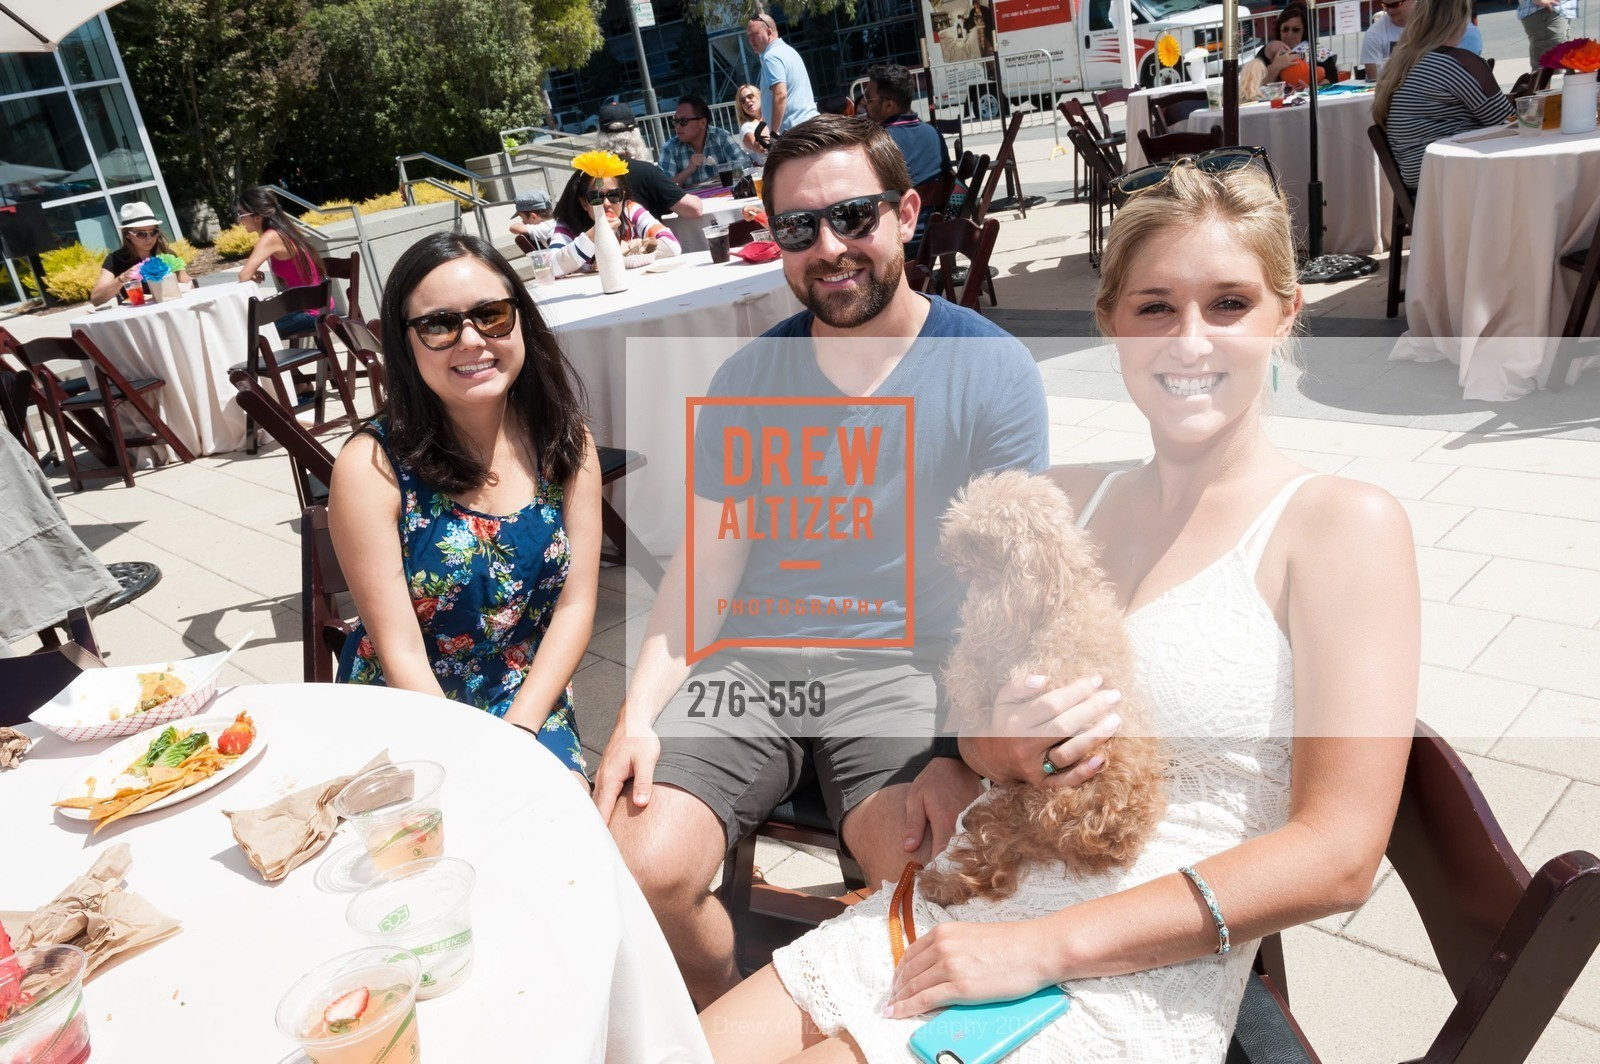 140906-Fusion, PRACTICE FUSION Company Picnic 2014, September 6th, 2014, Photo,Drew Altizer, Drew Altizer Photography, full-service agency, private events, San Francisco photographer, photographer california